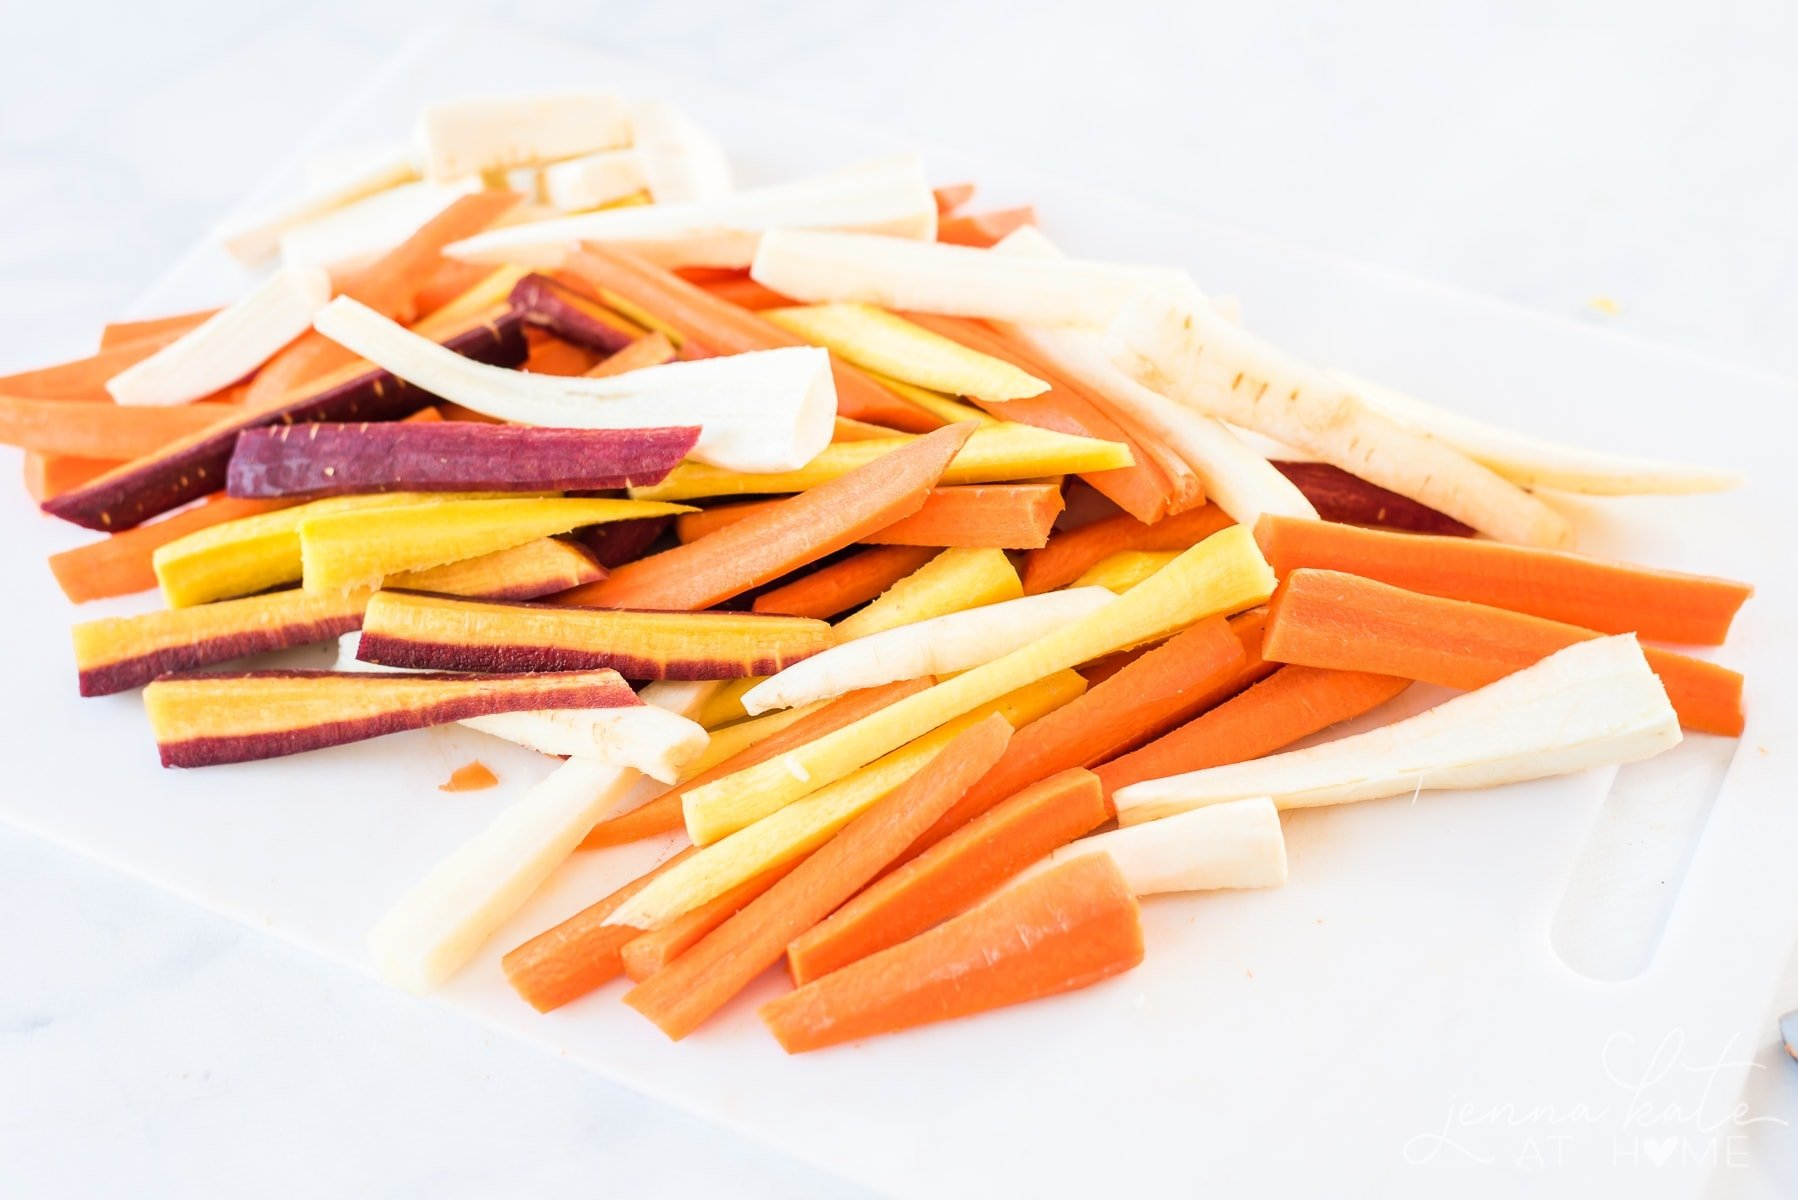 These colorful root vegetables are fresh and ready to be roasted to perfection for this one-pan Thanksgiving dinner